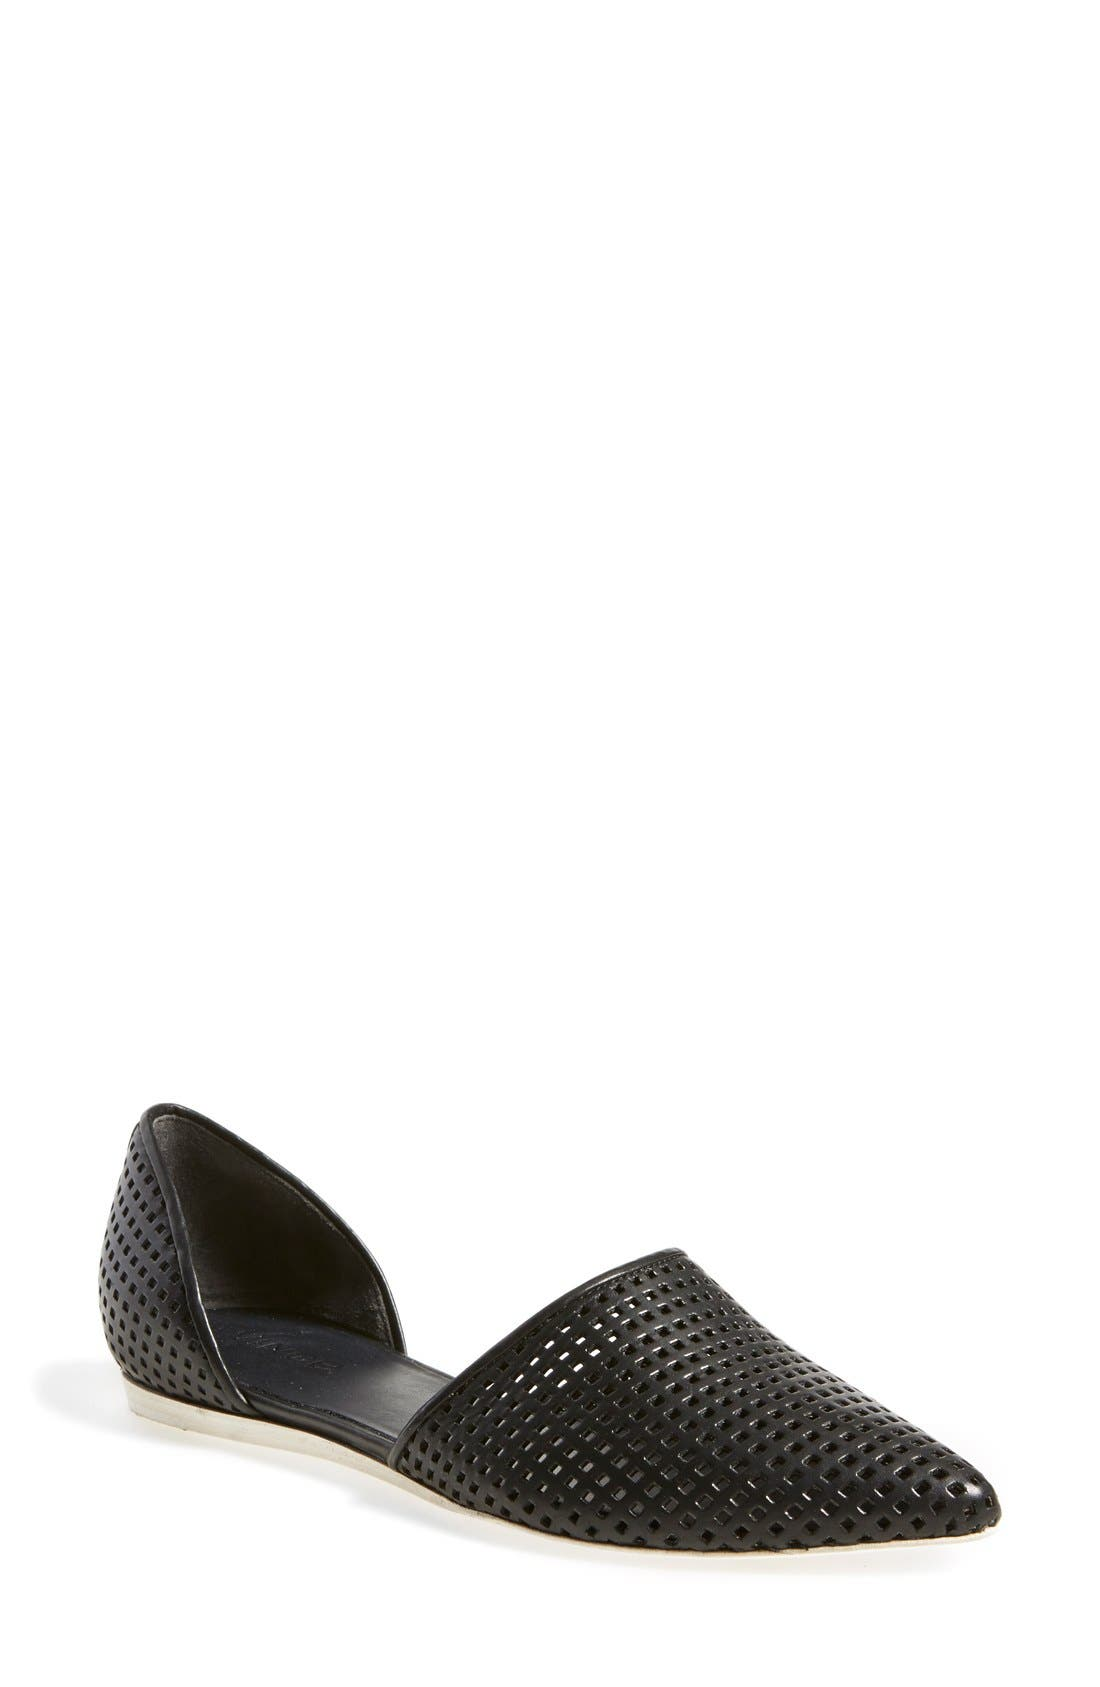 Alternate Image 1 Selected - Vince 'Nina 2' Perforated Leather D'Orsay Flat (Women)